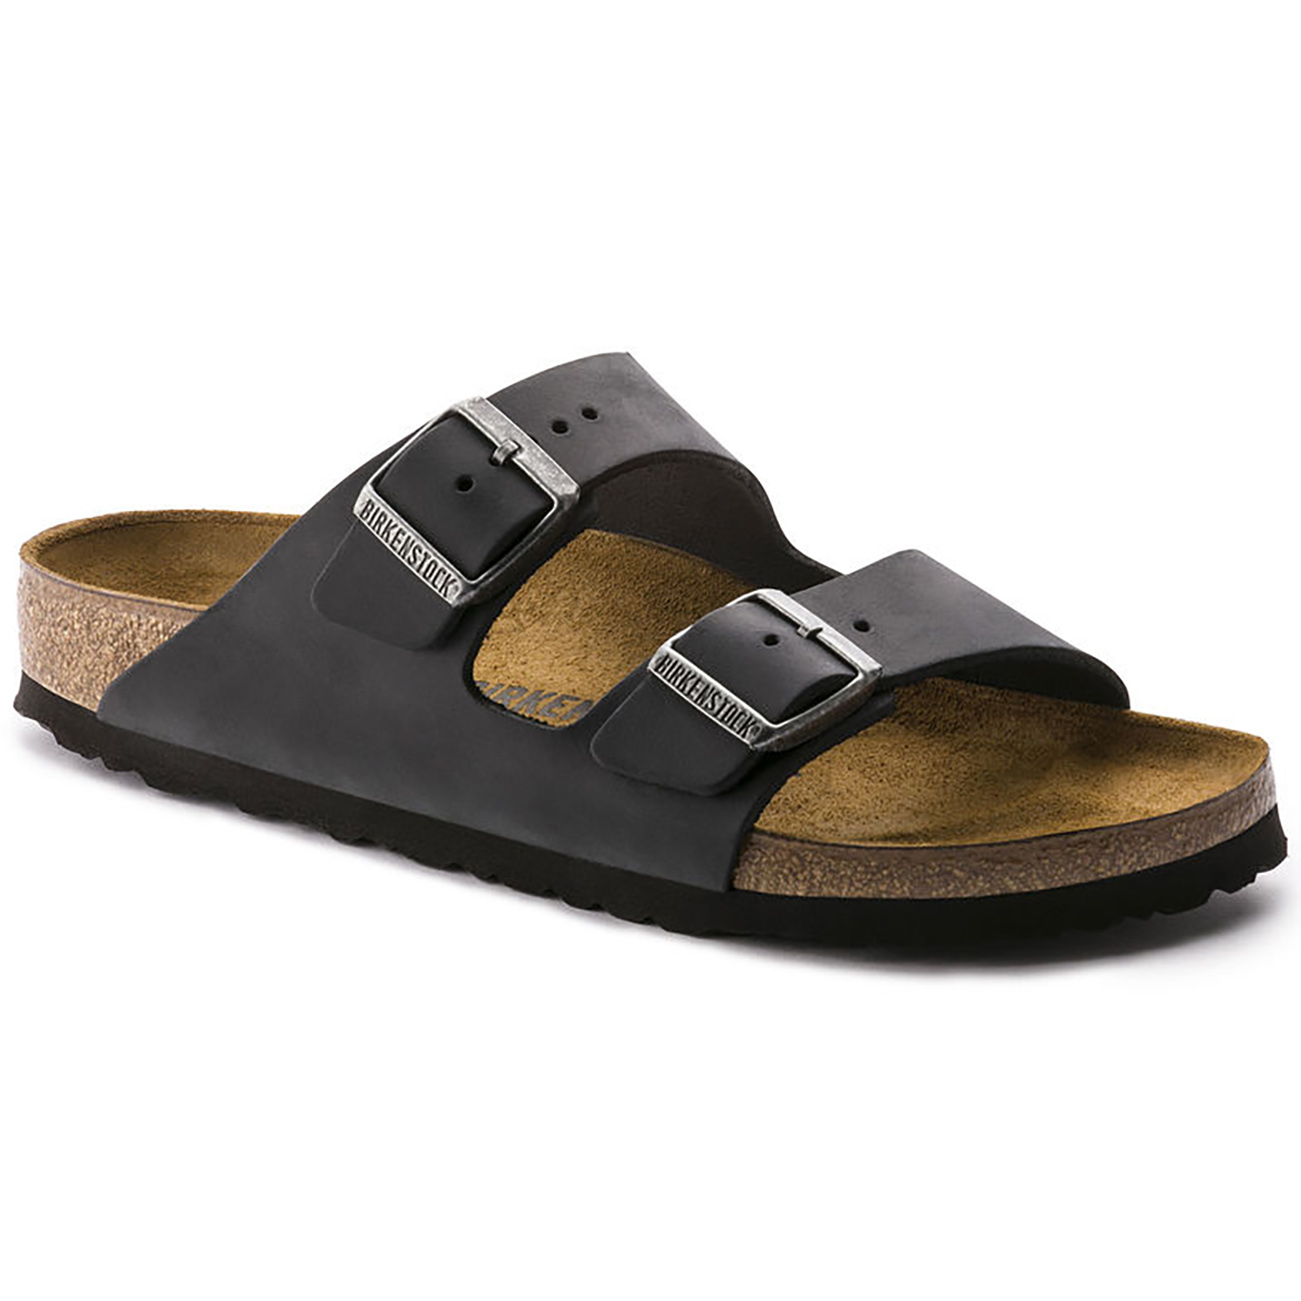 Unisex Adults Birkenstock Arizona Oiled Leather